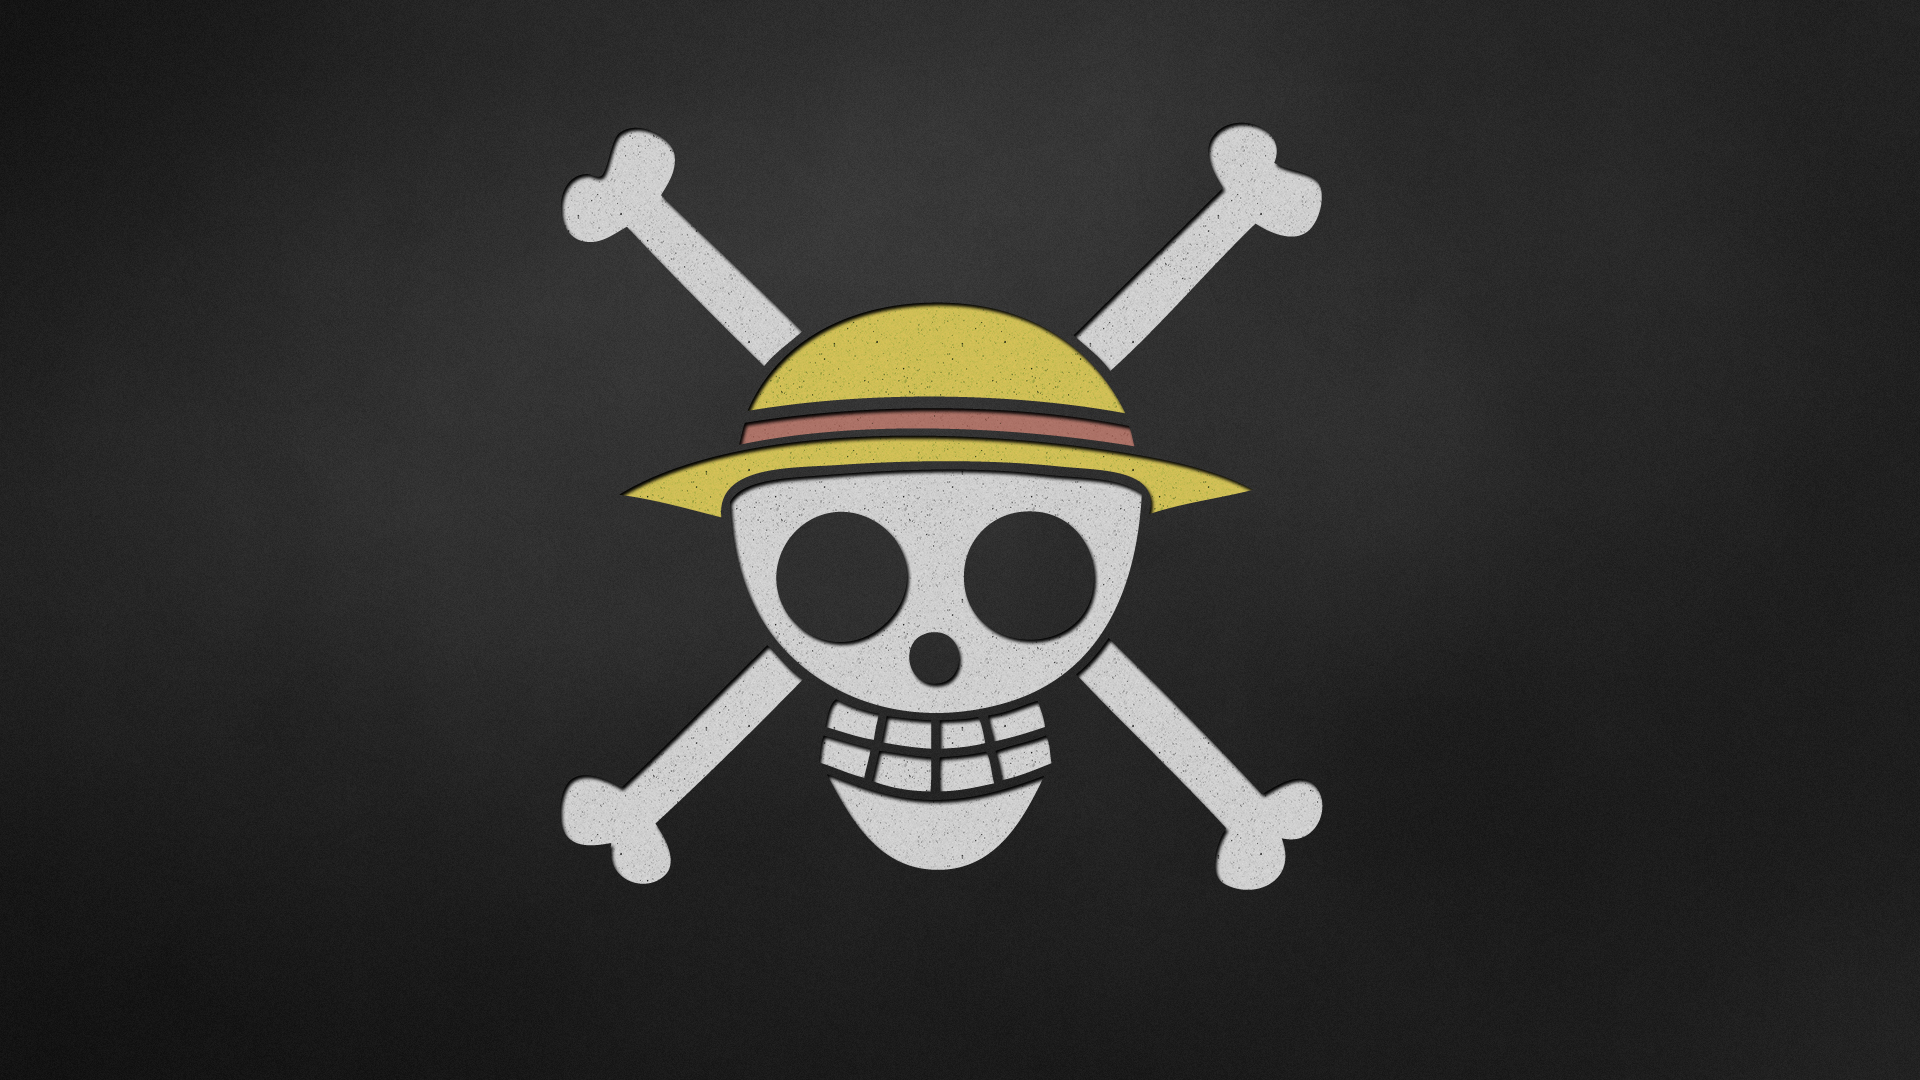 76 Hd One Piece Wallpaper Backgrounds For Download